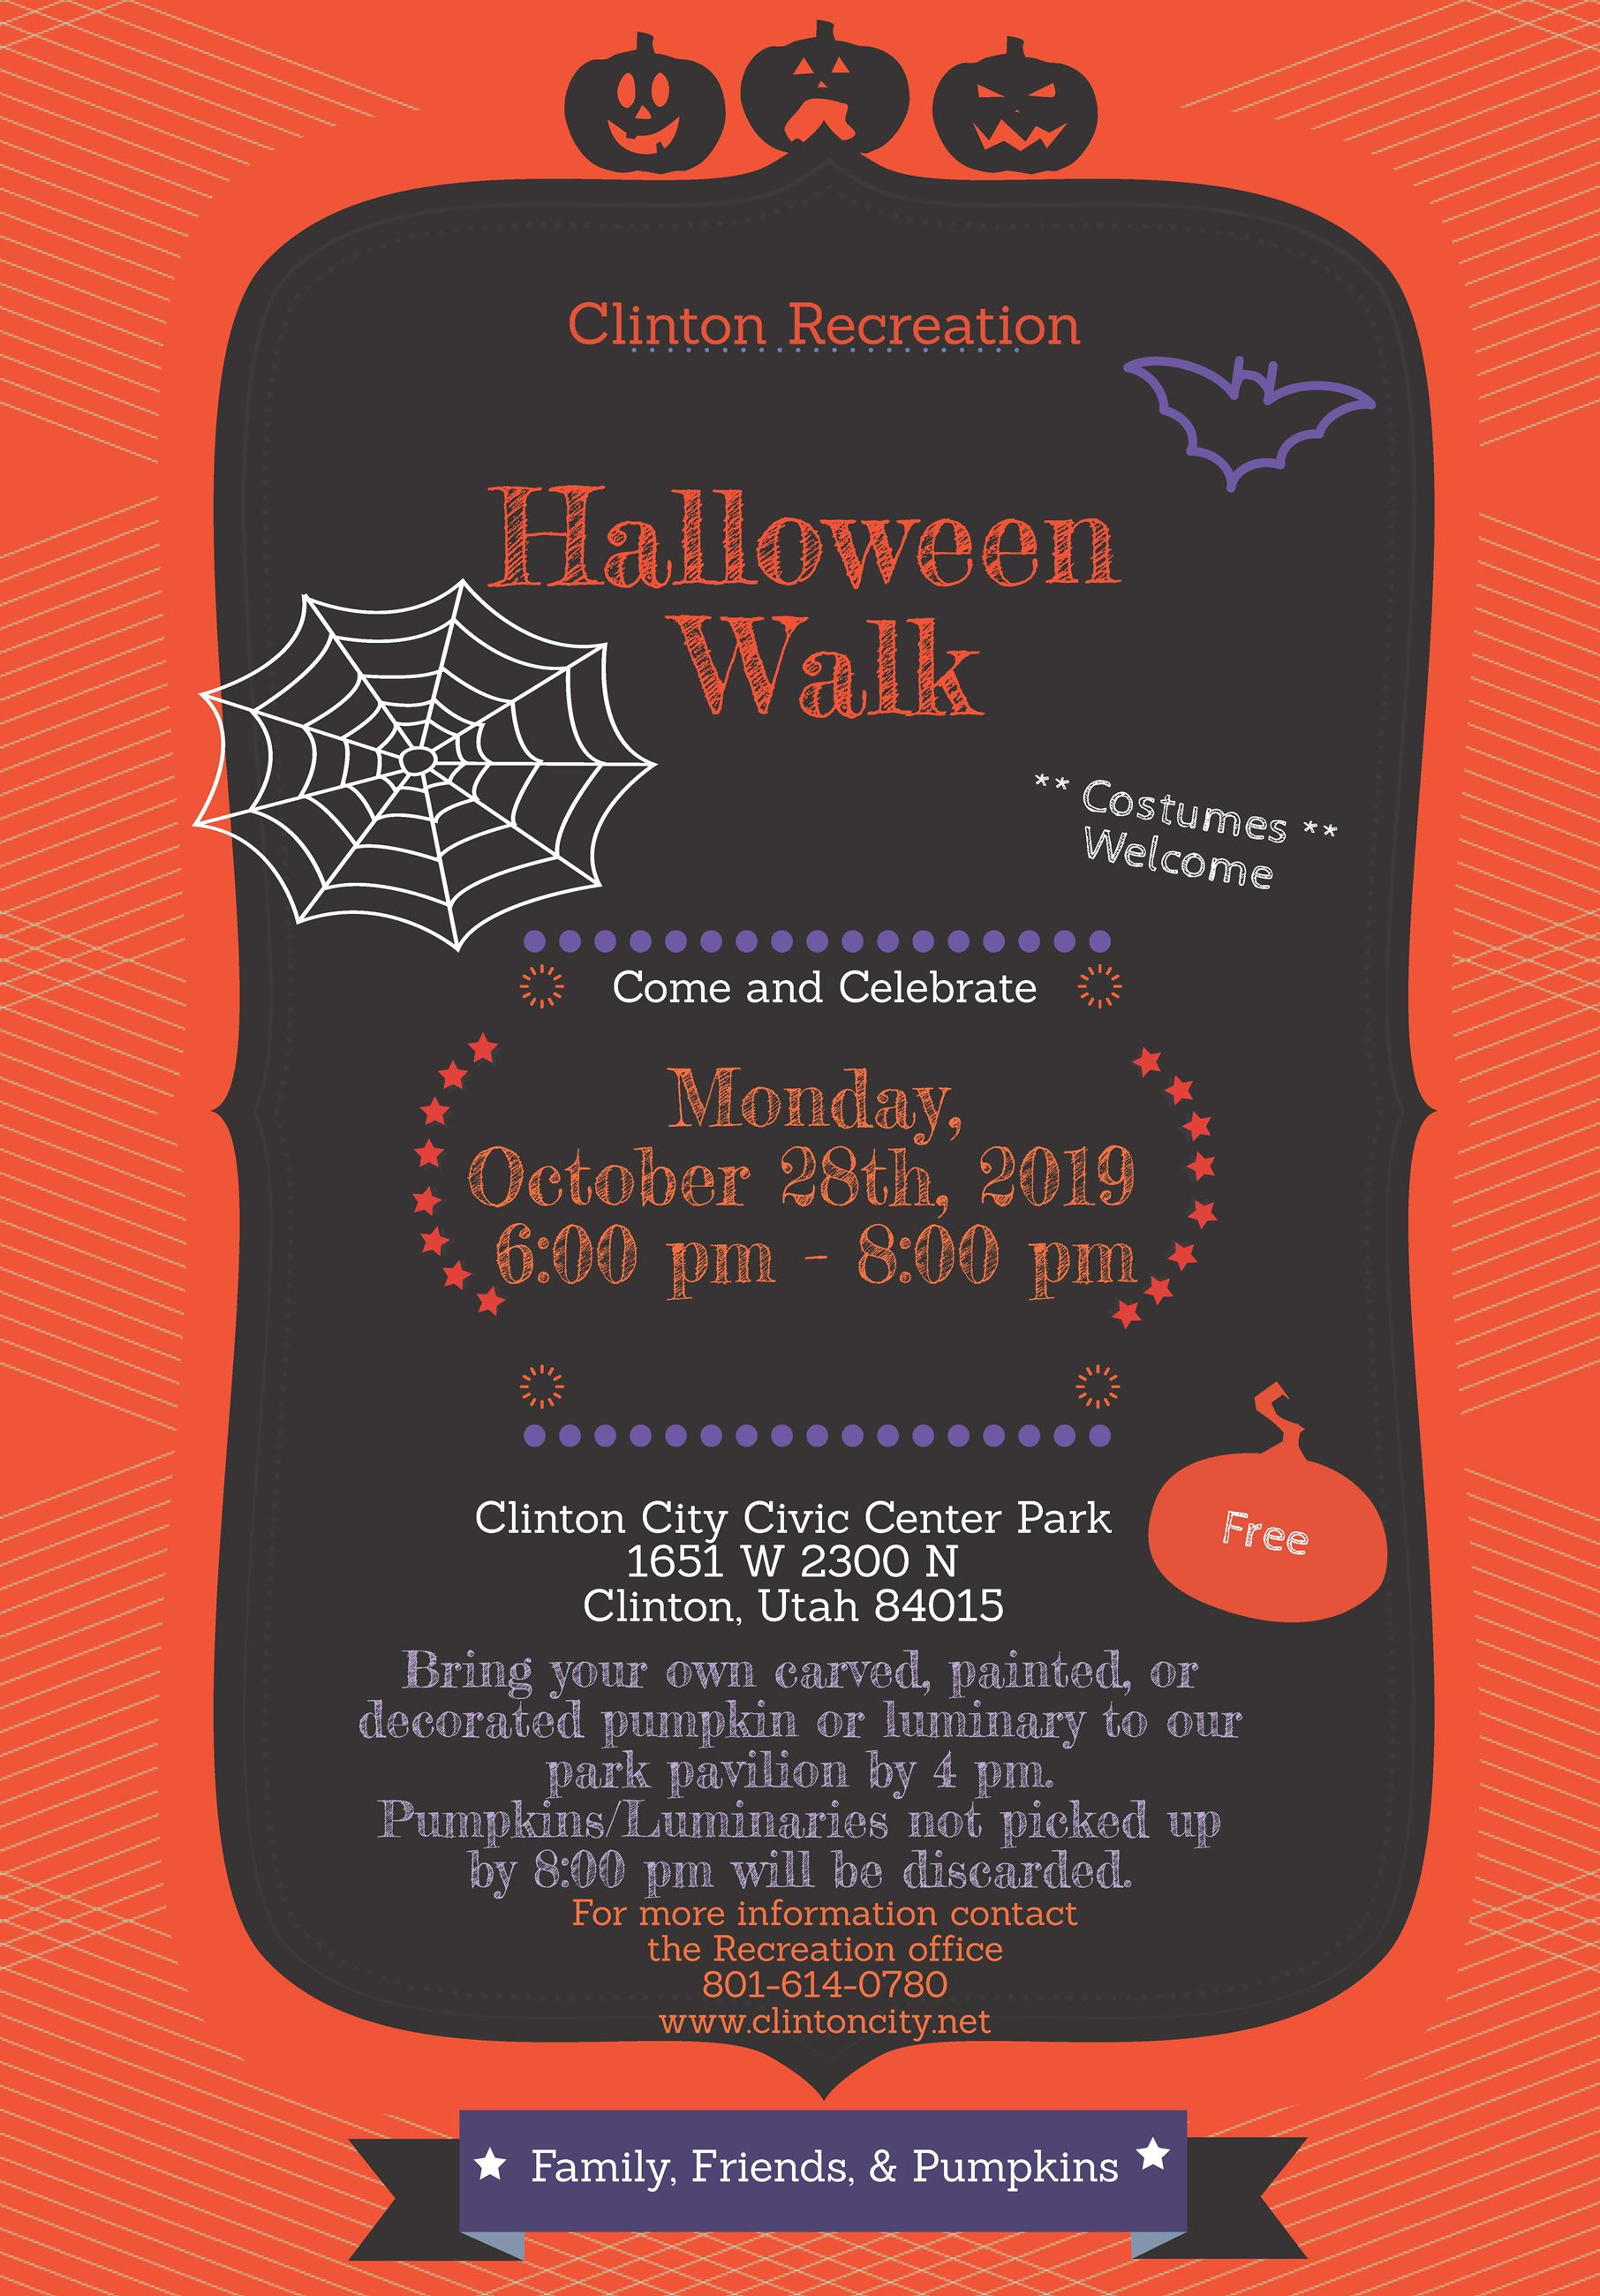 2019 Halloween Walk Flyer